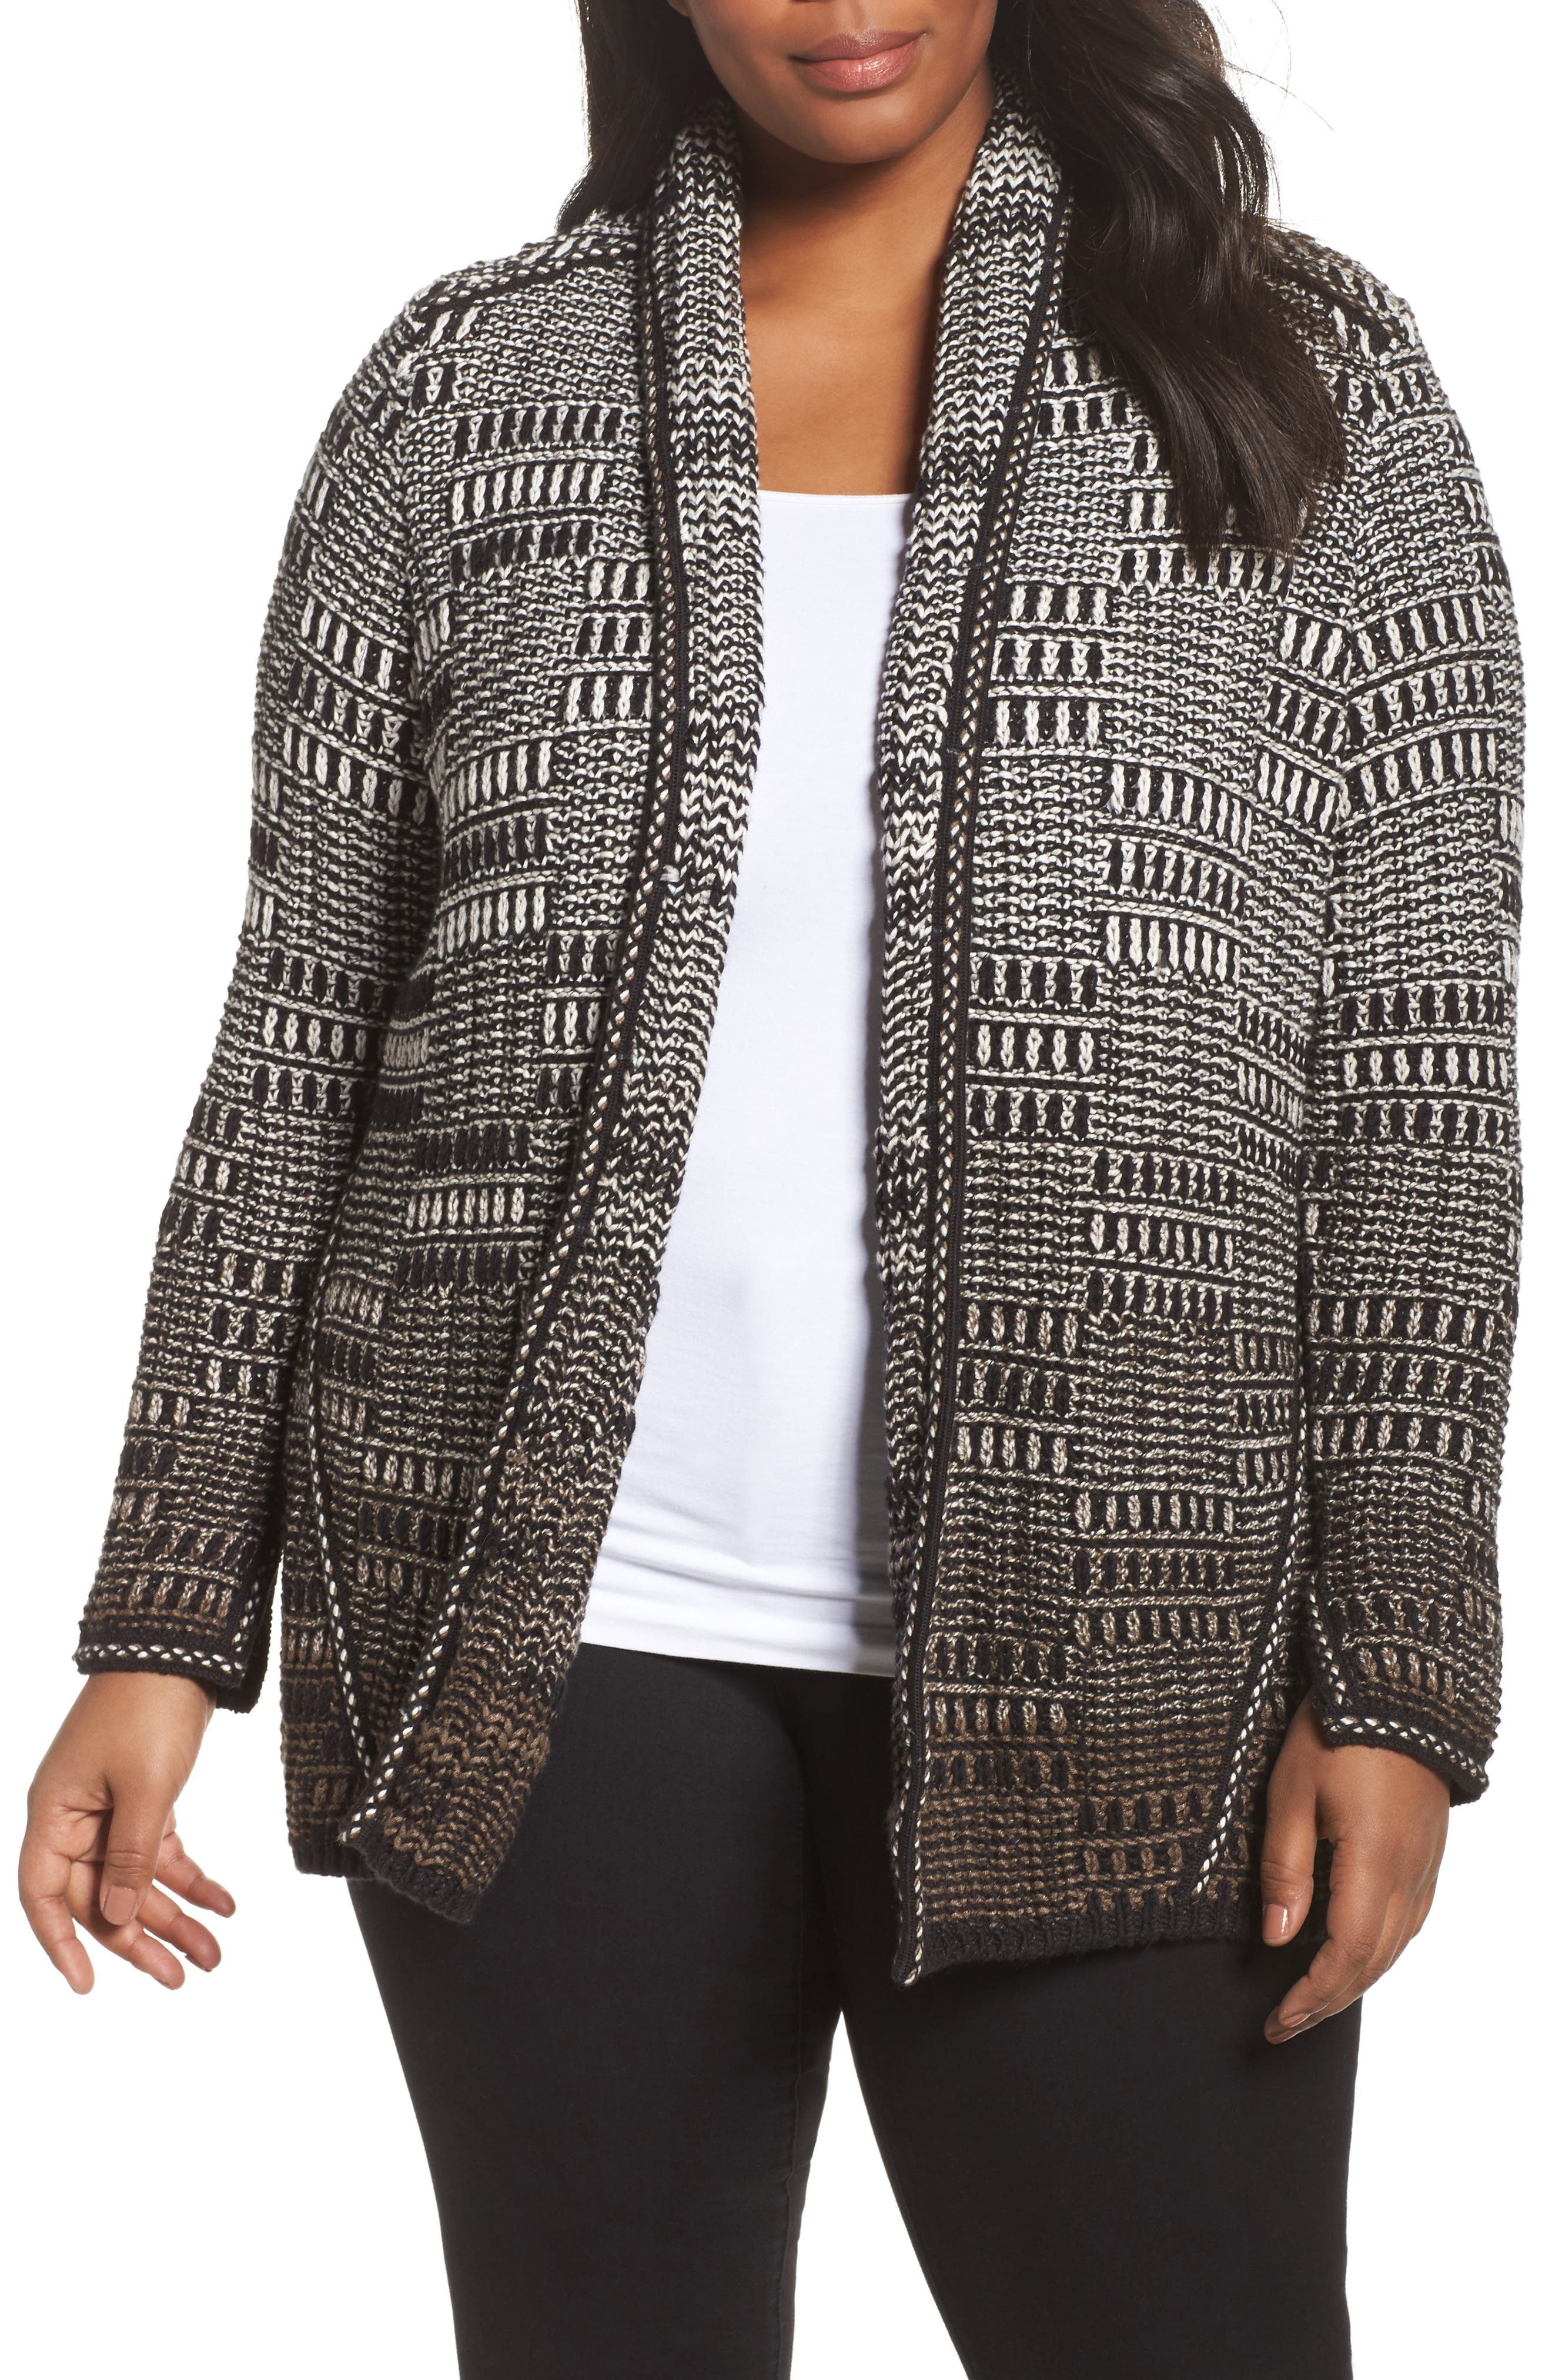 All the Lines Cardigan,                         Main,                         color, 010